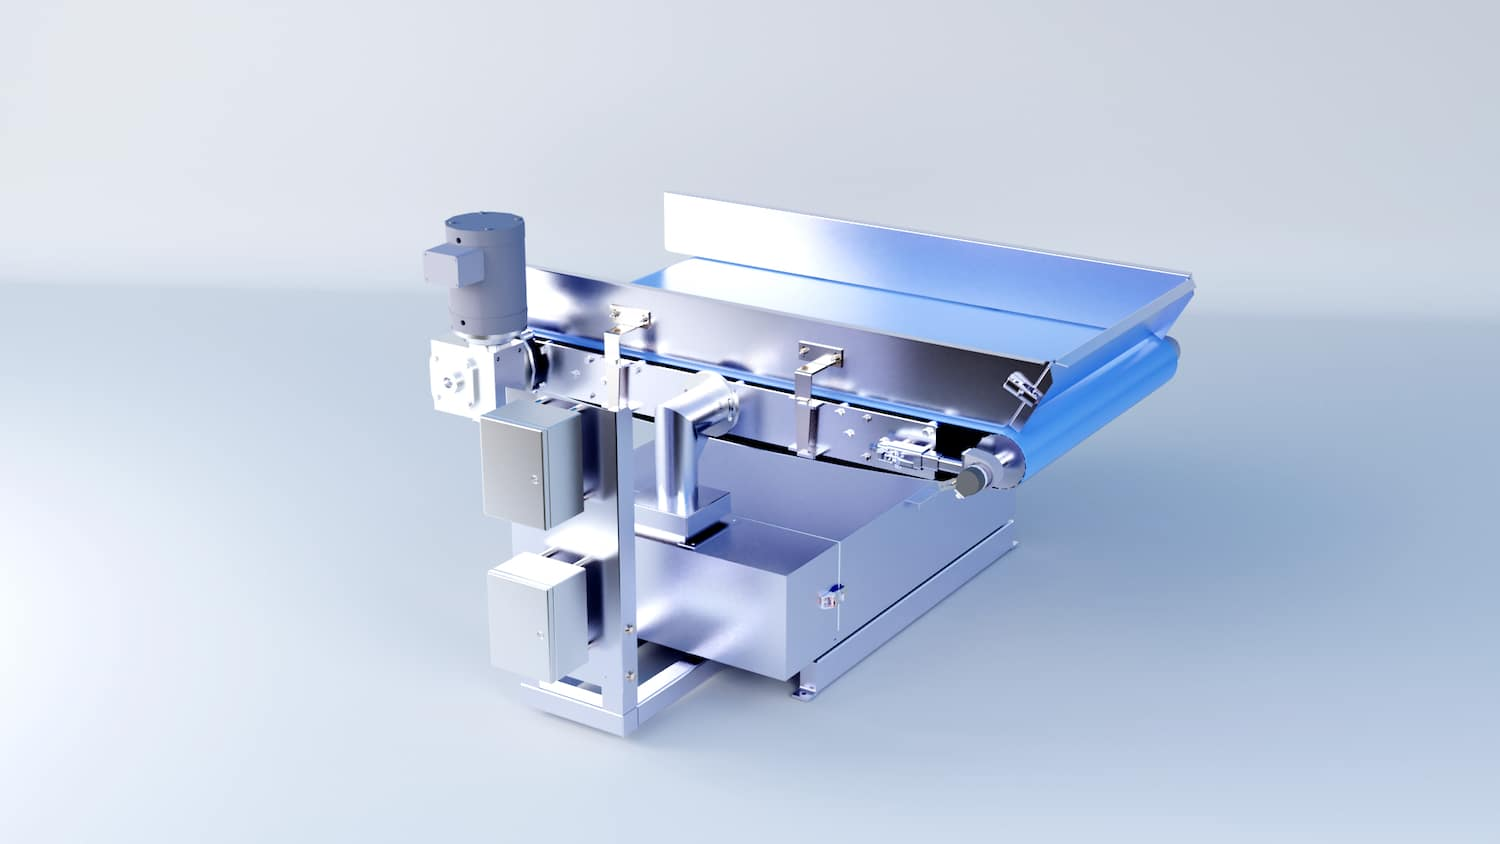 Insertion Weigh Belt Module for Superior Accuracy in Tight Spaces